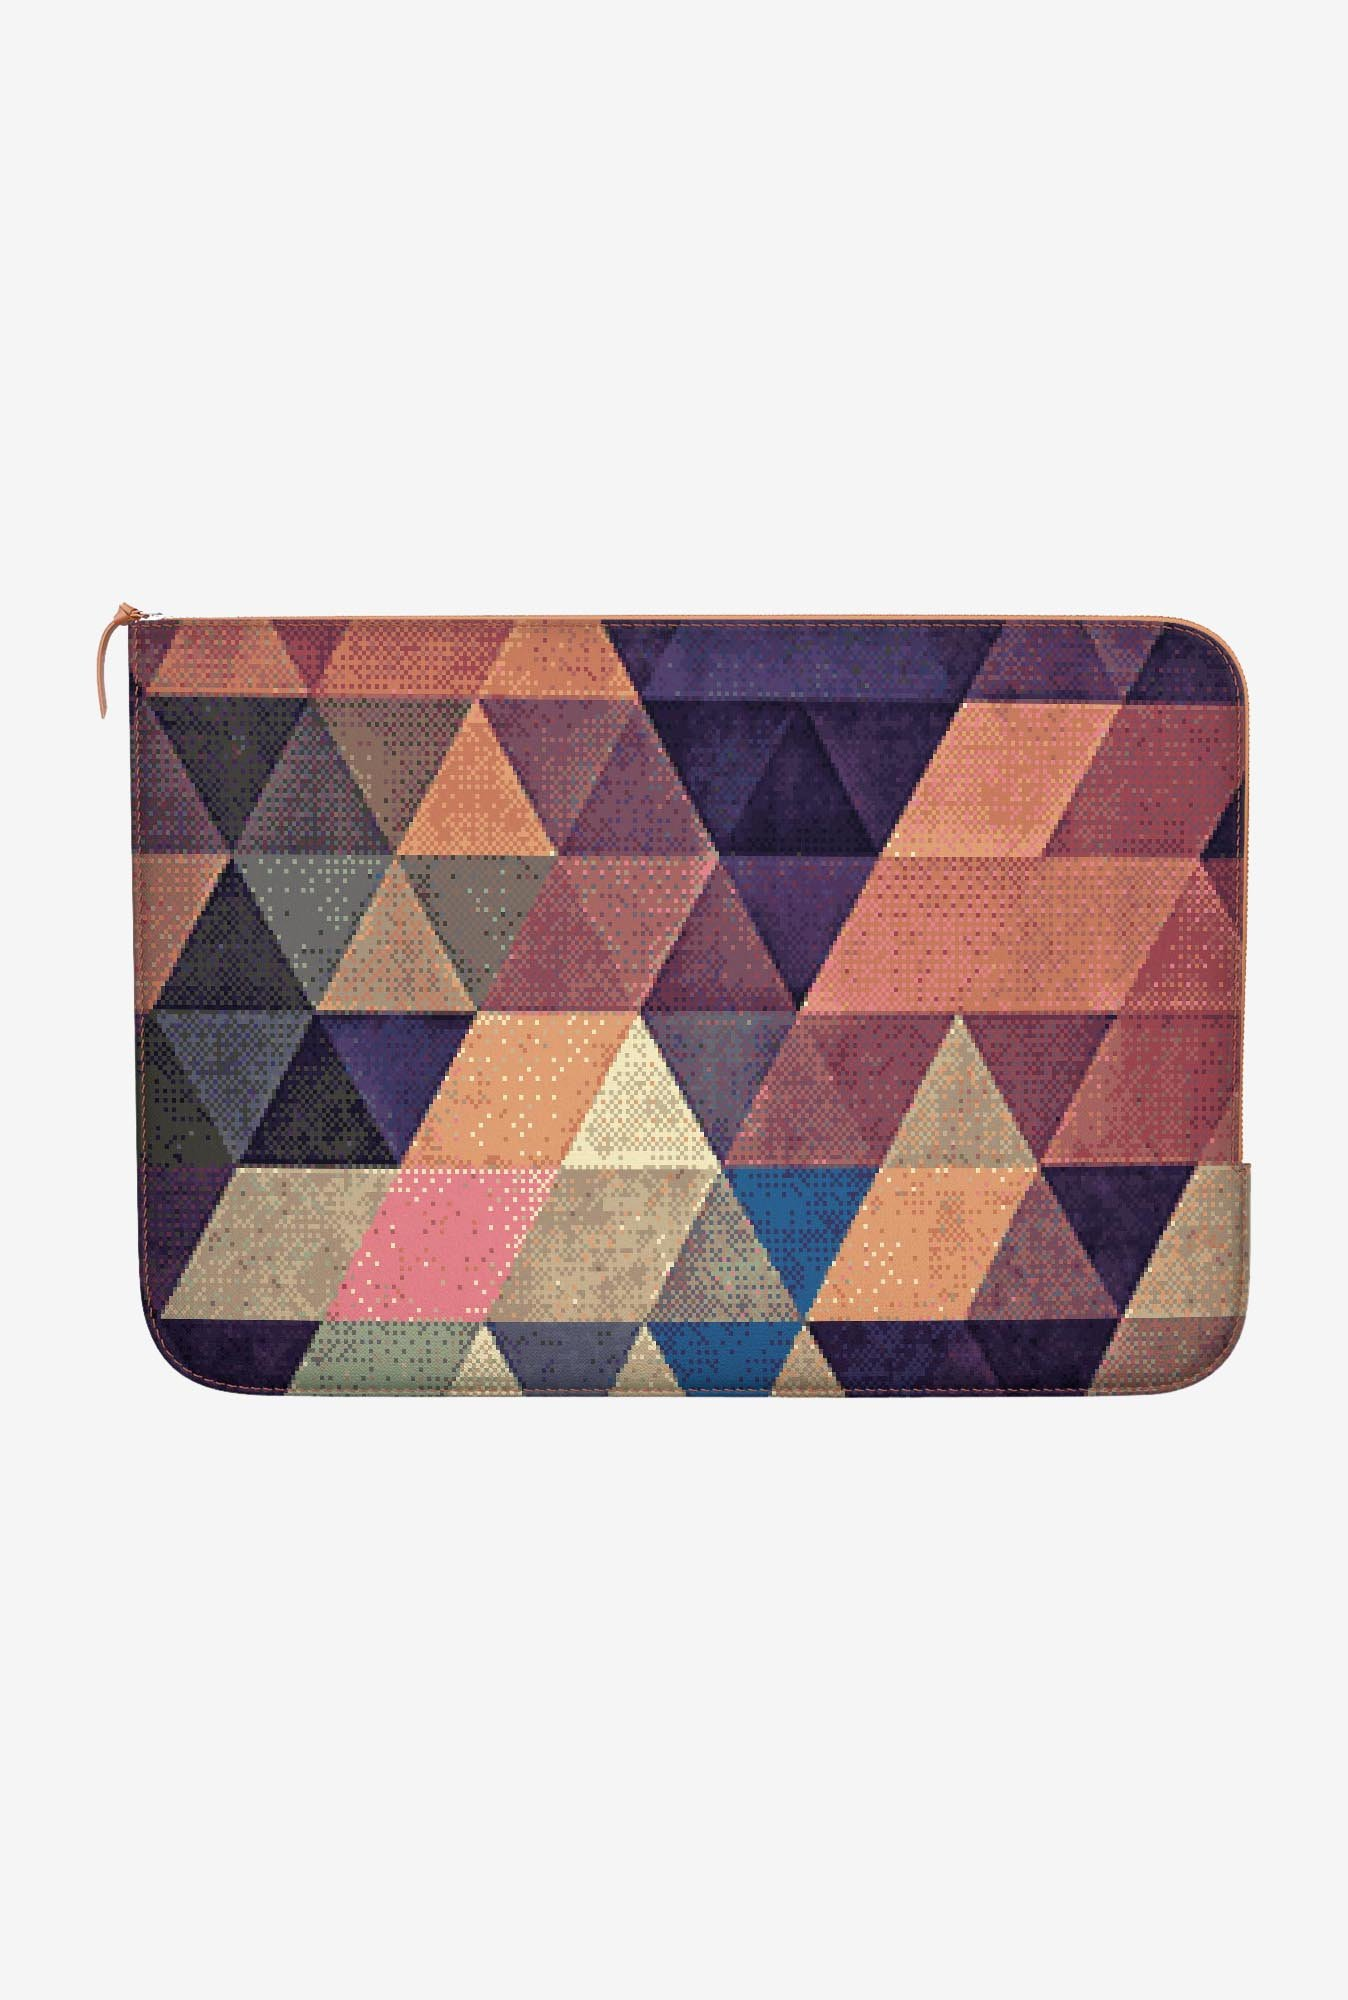 "DailyObjects Fydyxy Pyxyl Macbook Pro 13"" Zippered Sleeve"